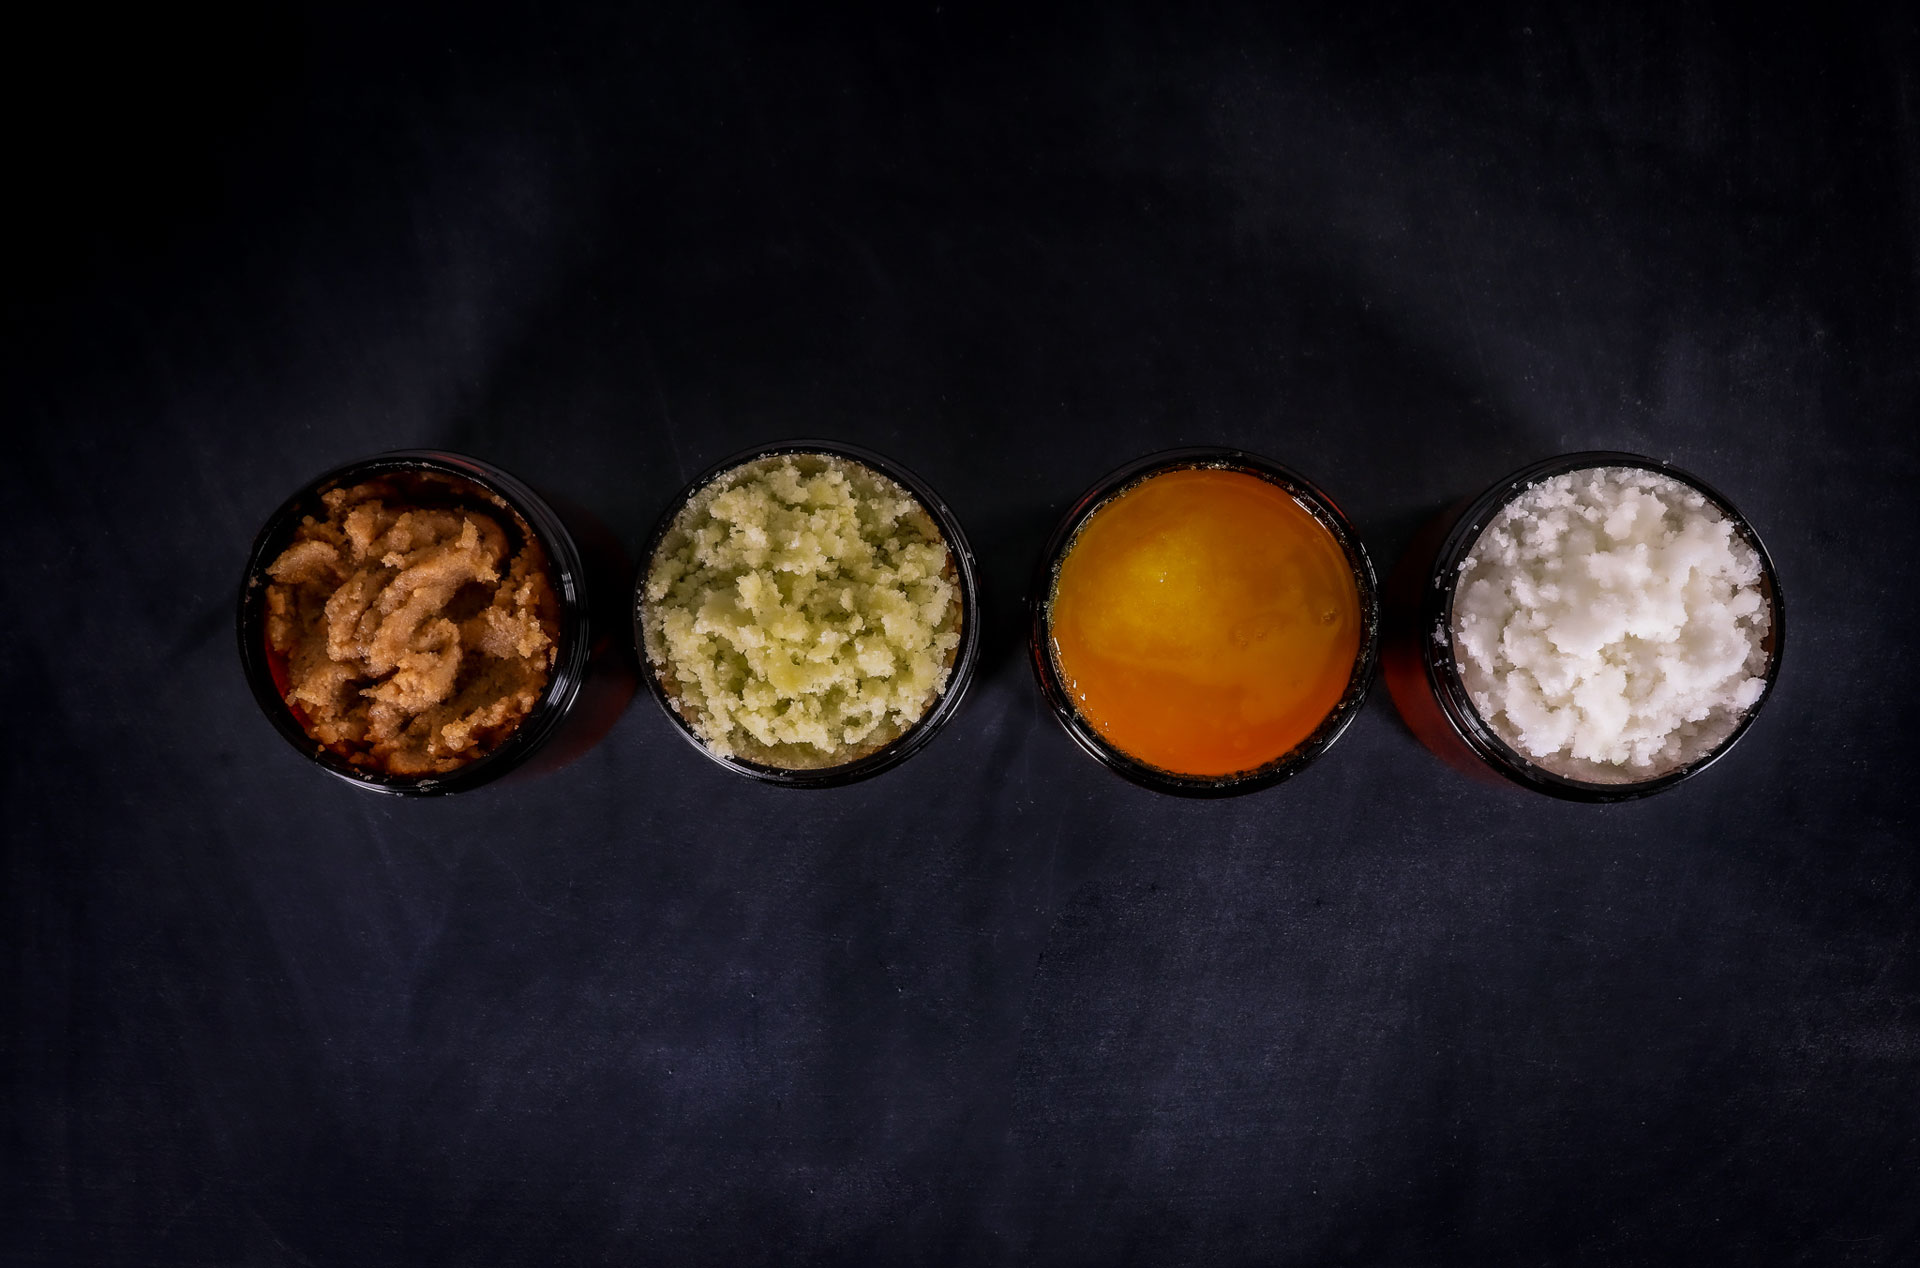 4 Homemade Sugar Scrub Recipes That Will Leave Your Skin Smelling Yummy